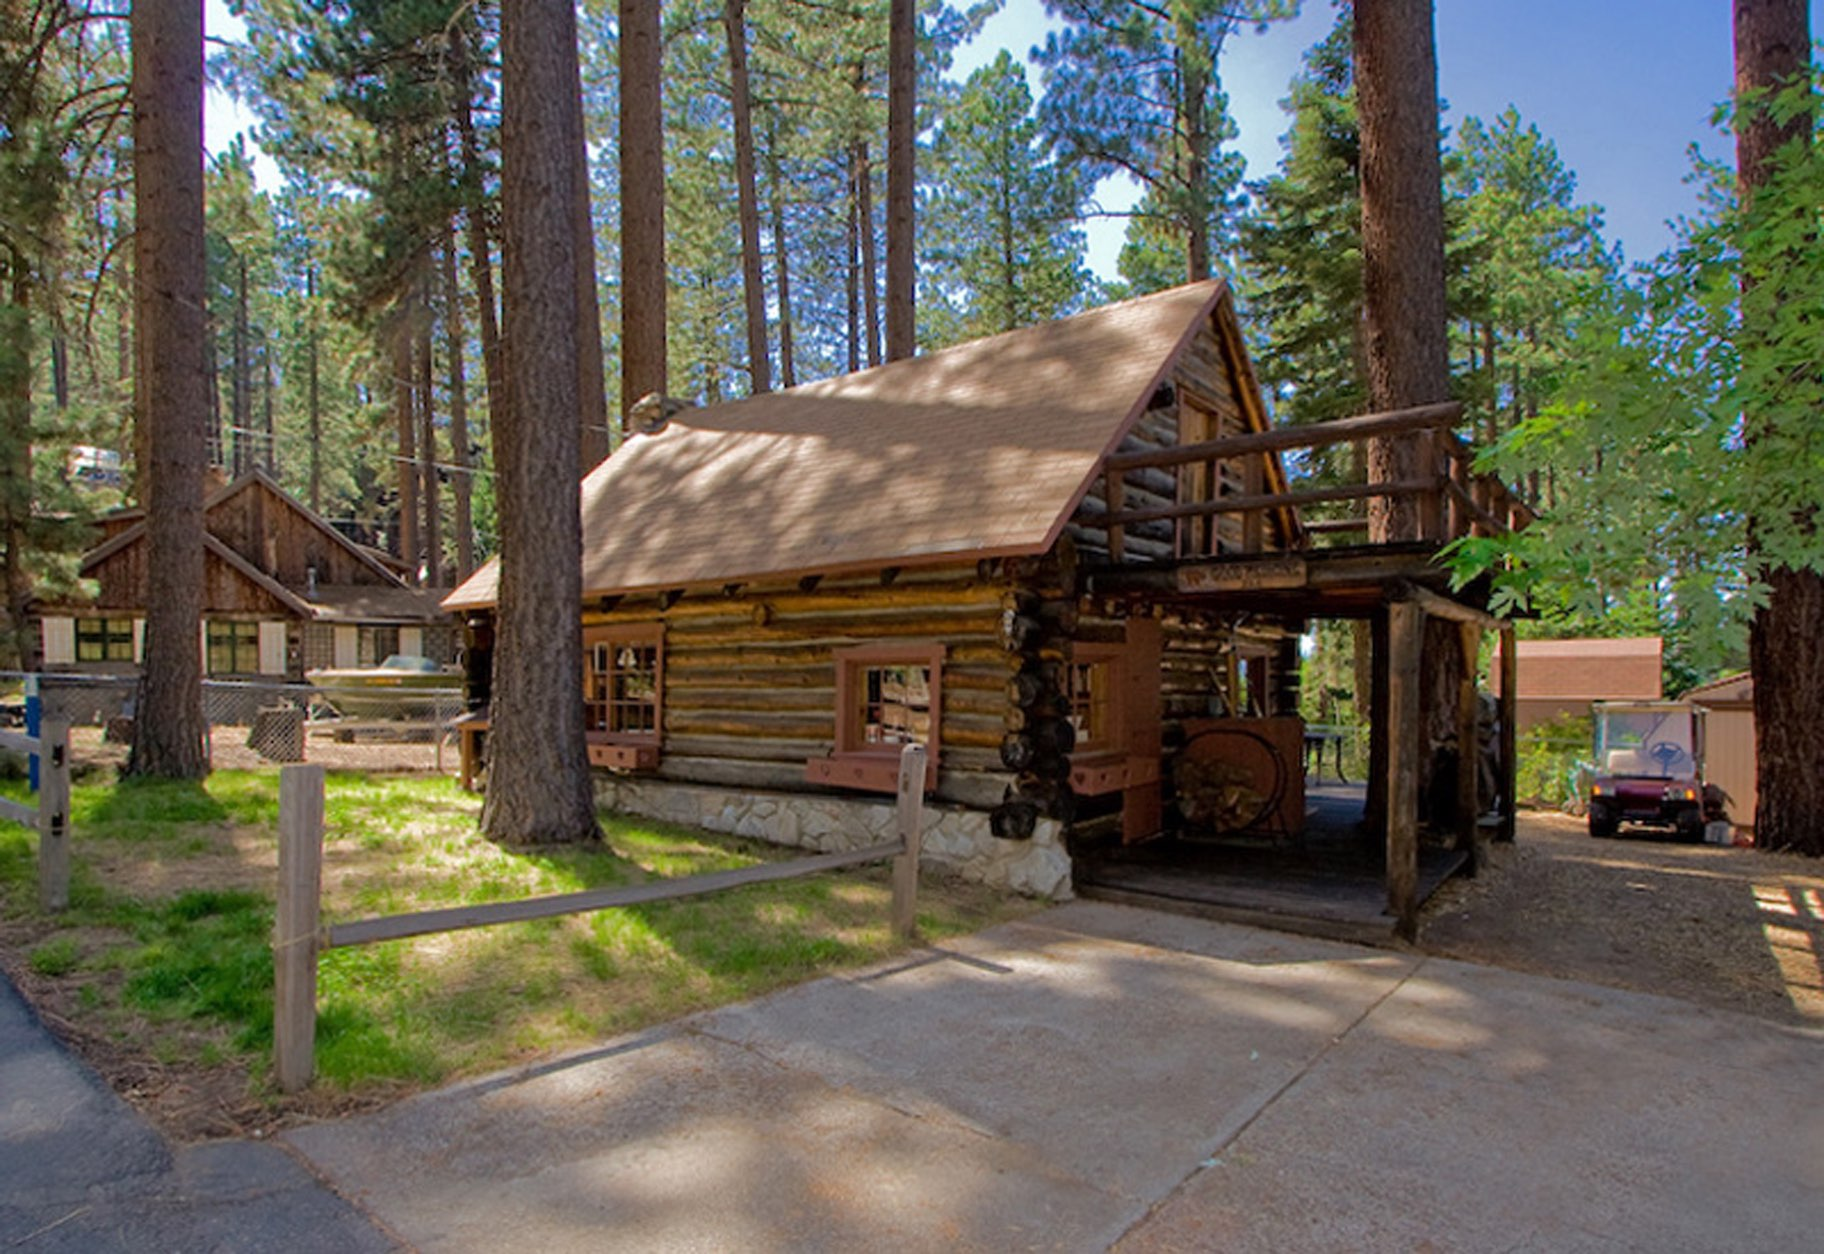 Excellent Cabins Small House Bliss Largest Home Design Picture Inspirations Pitcheantrous